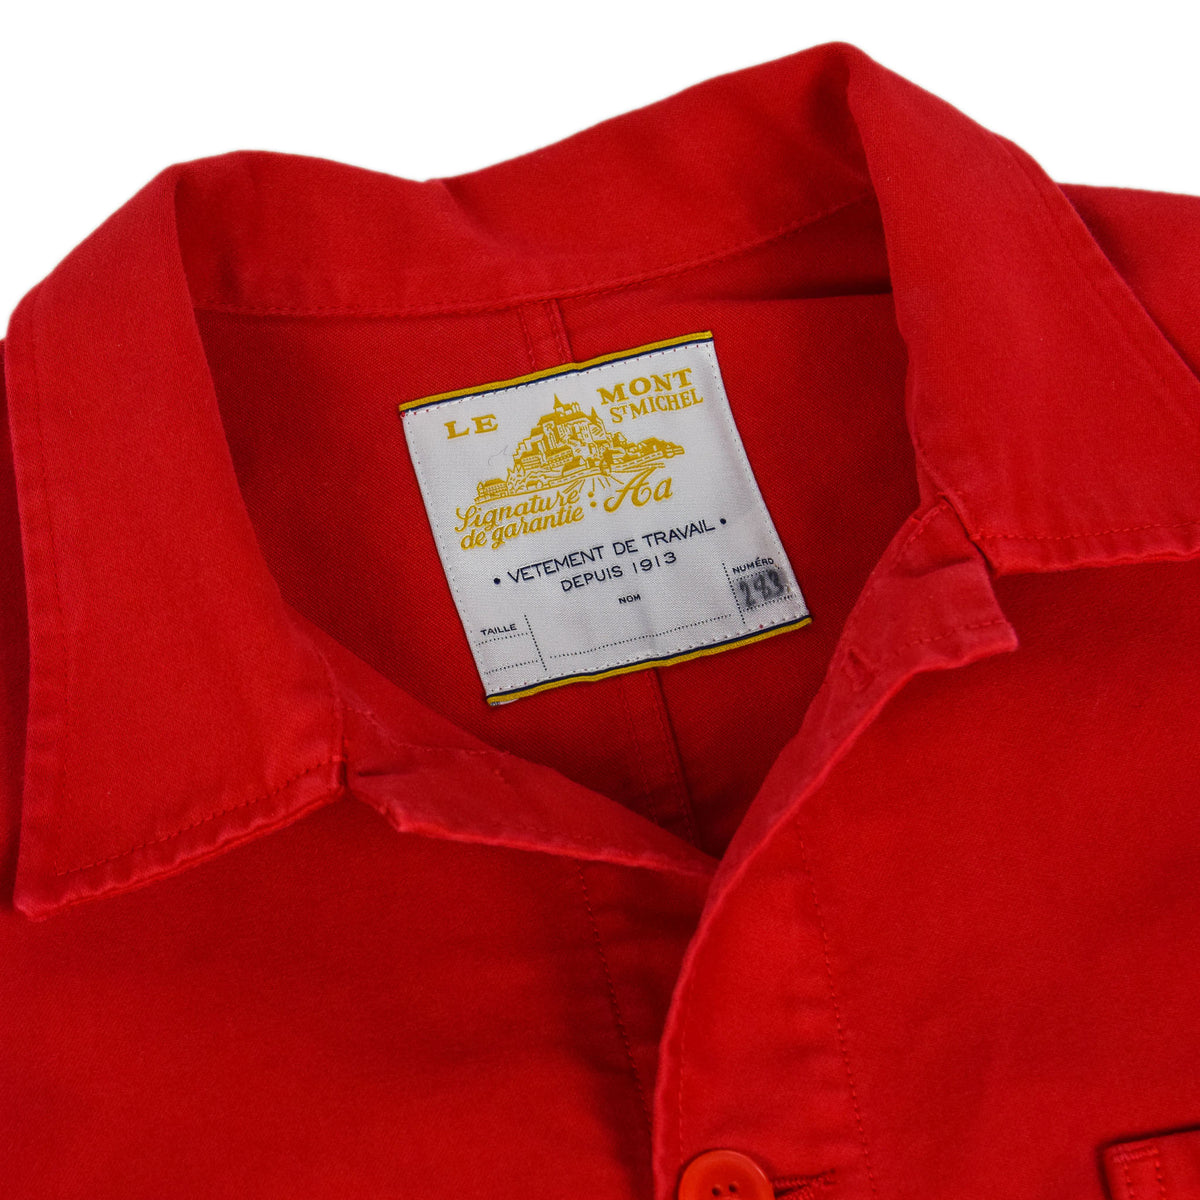 Le Mont St Michel Genuine Moleskin Work Jacket Red Collar